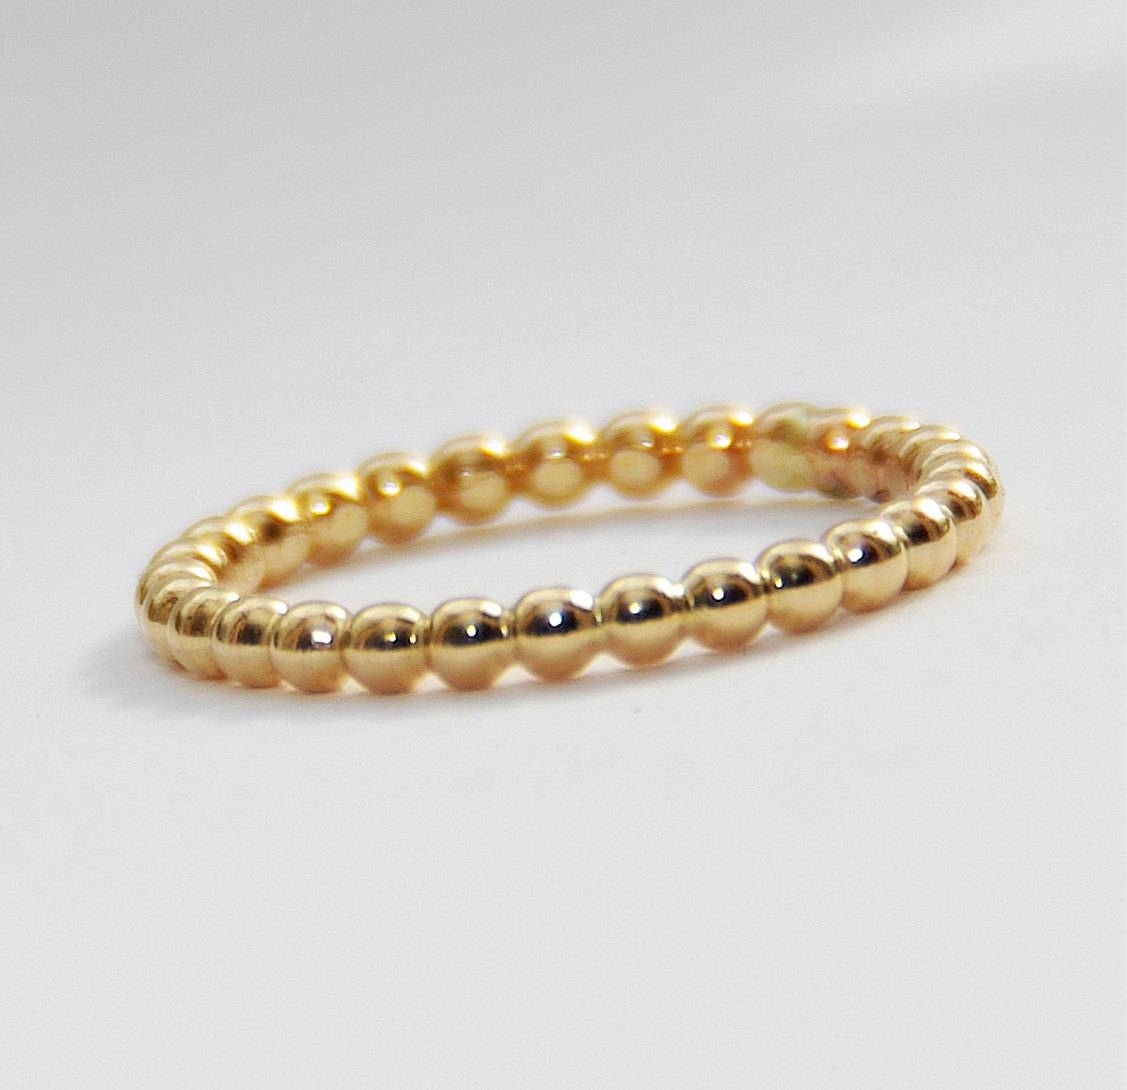 2Mm Bold Yellow Gold Filled Beaded Ring  Anniversary Ring  14K Within Most Up To Date Stacking Anniversary Rings (View 2 of 25)